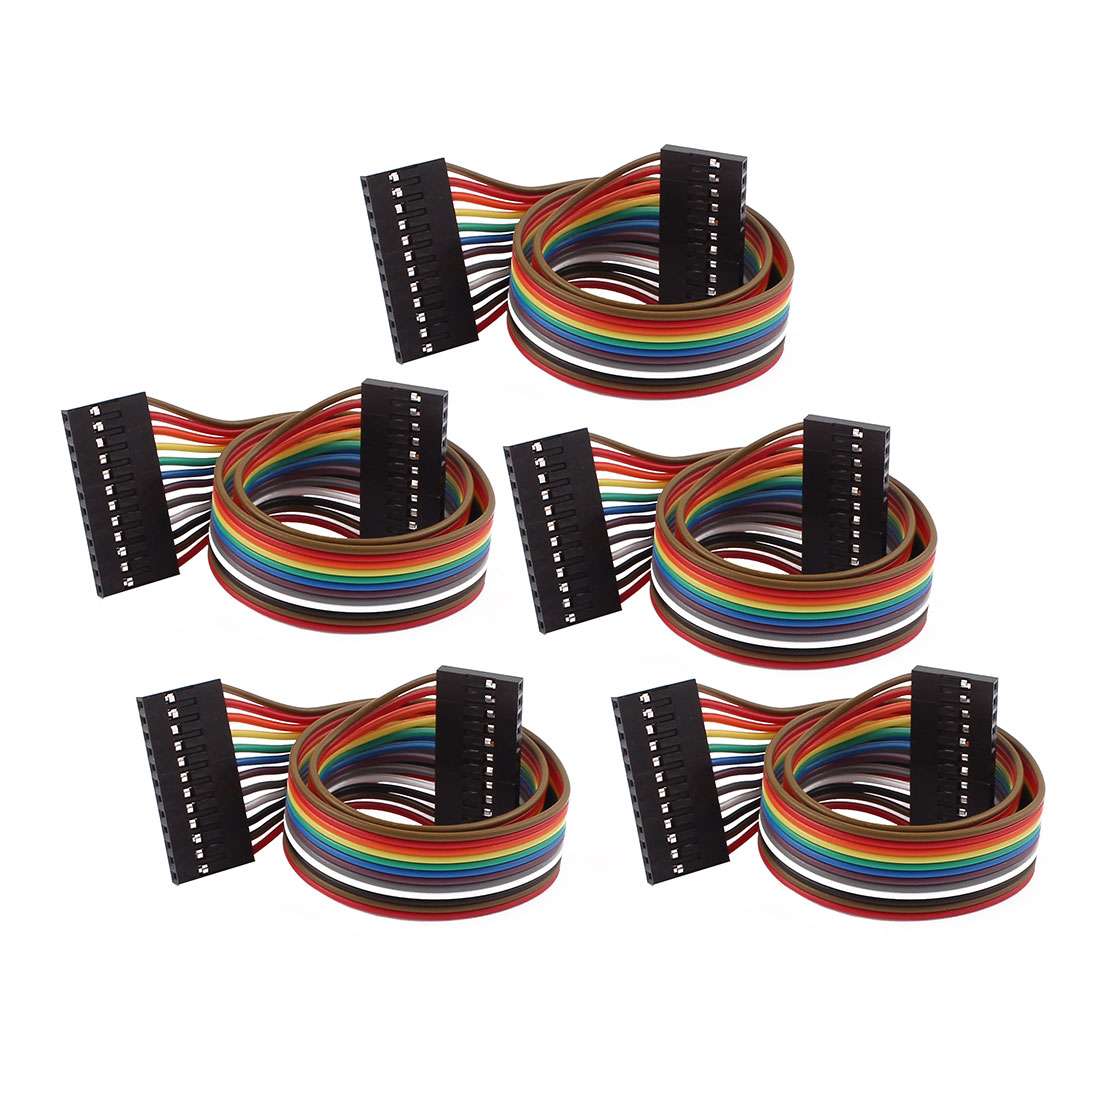 5 Pcs 2.54mm Pitch 12P Female Breadboard Double Head Jumper Wire Cable 30cm Length